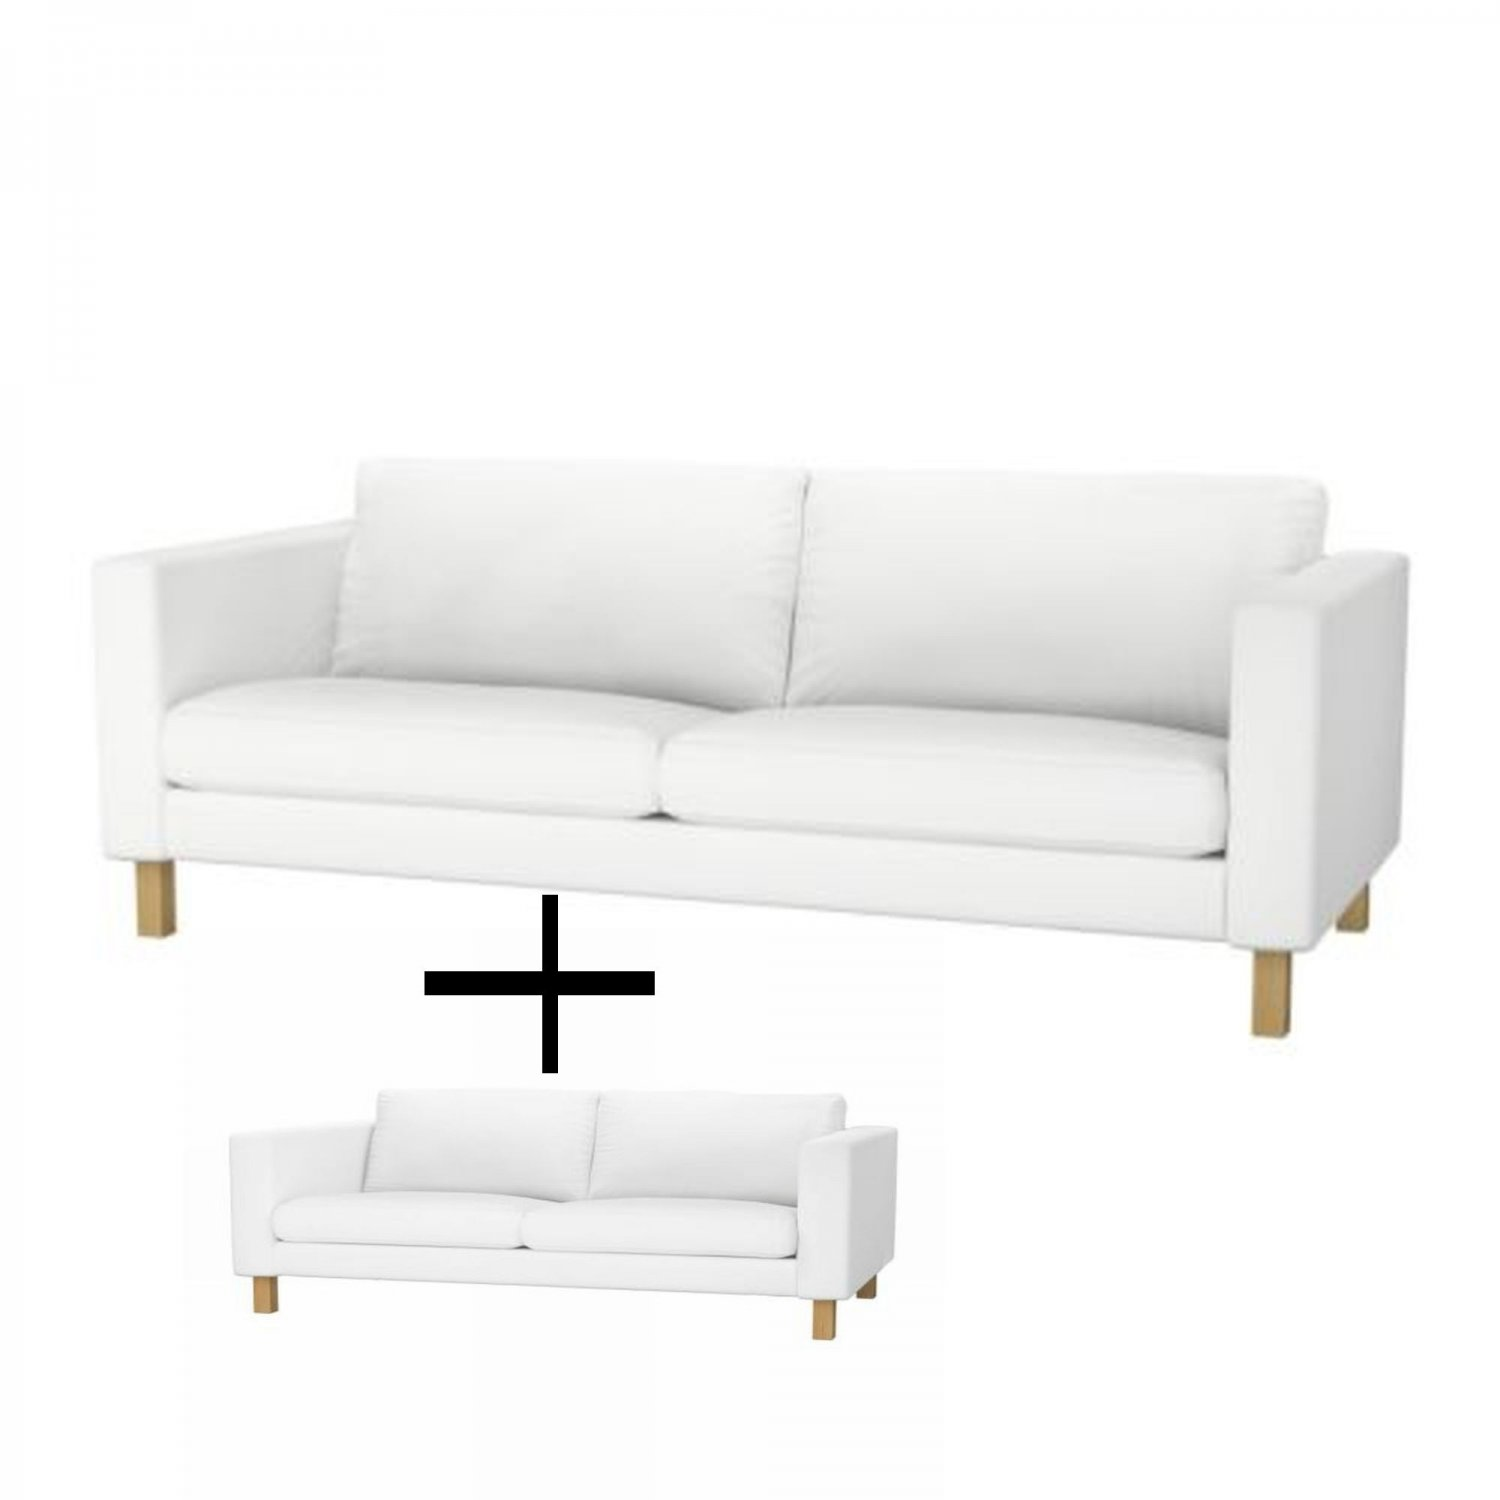 Cover For Karlstad Sofa: IKEA KARLSTAD 3 Seat Sofa And 2 Seat Lovseat SLIPCOVER